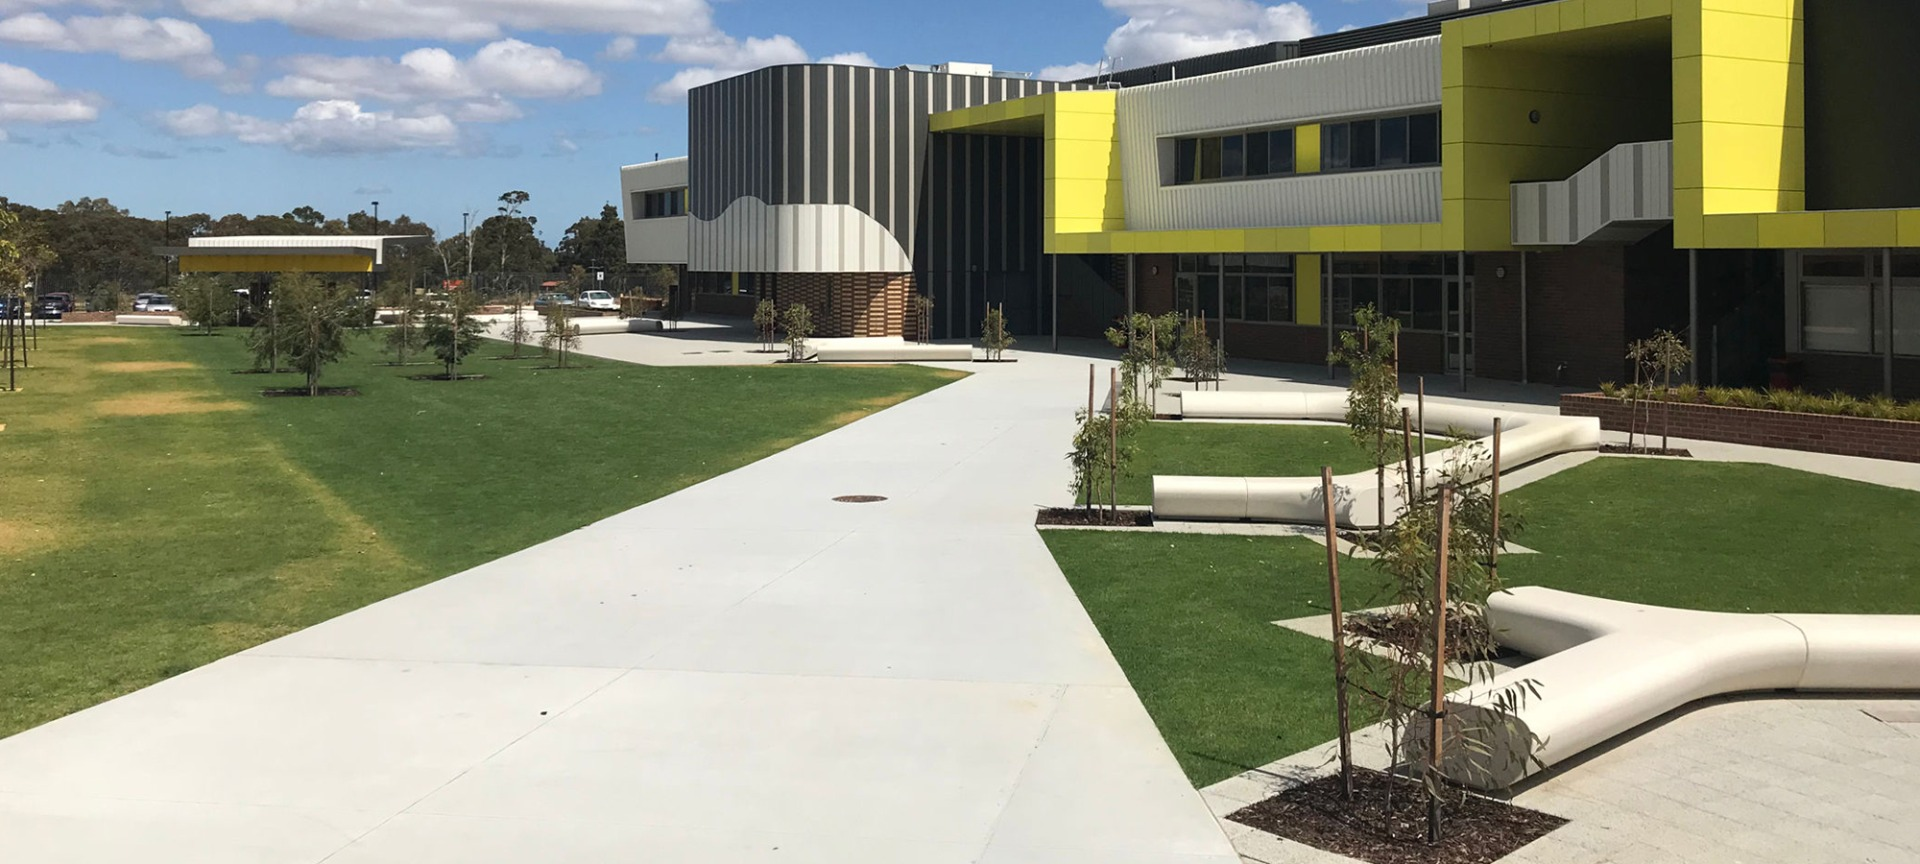 Byford Secondary College